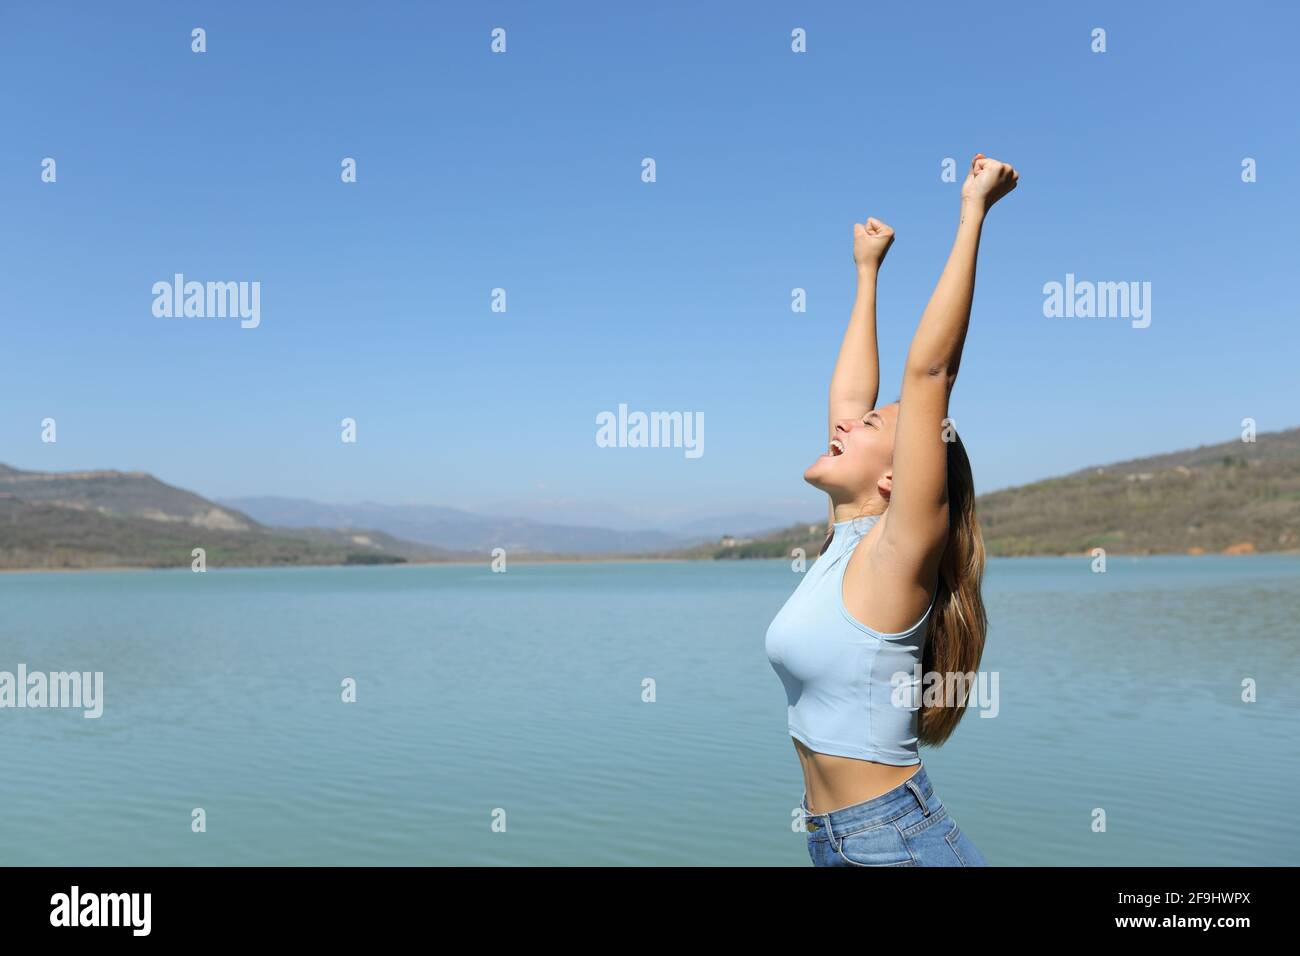 Profile of an excited woman celebrating vacation in a lake Stock Photo